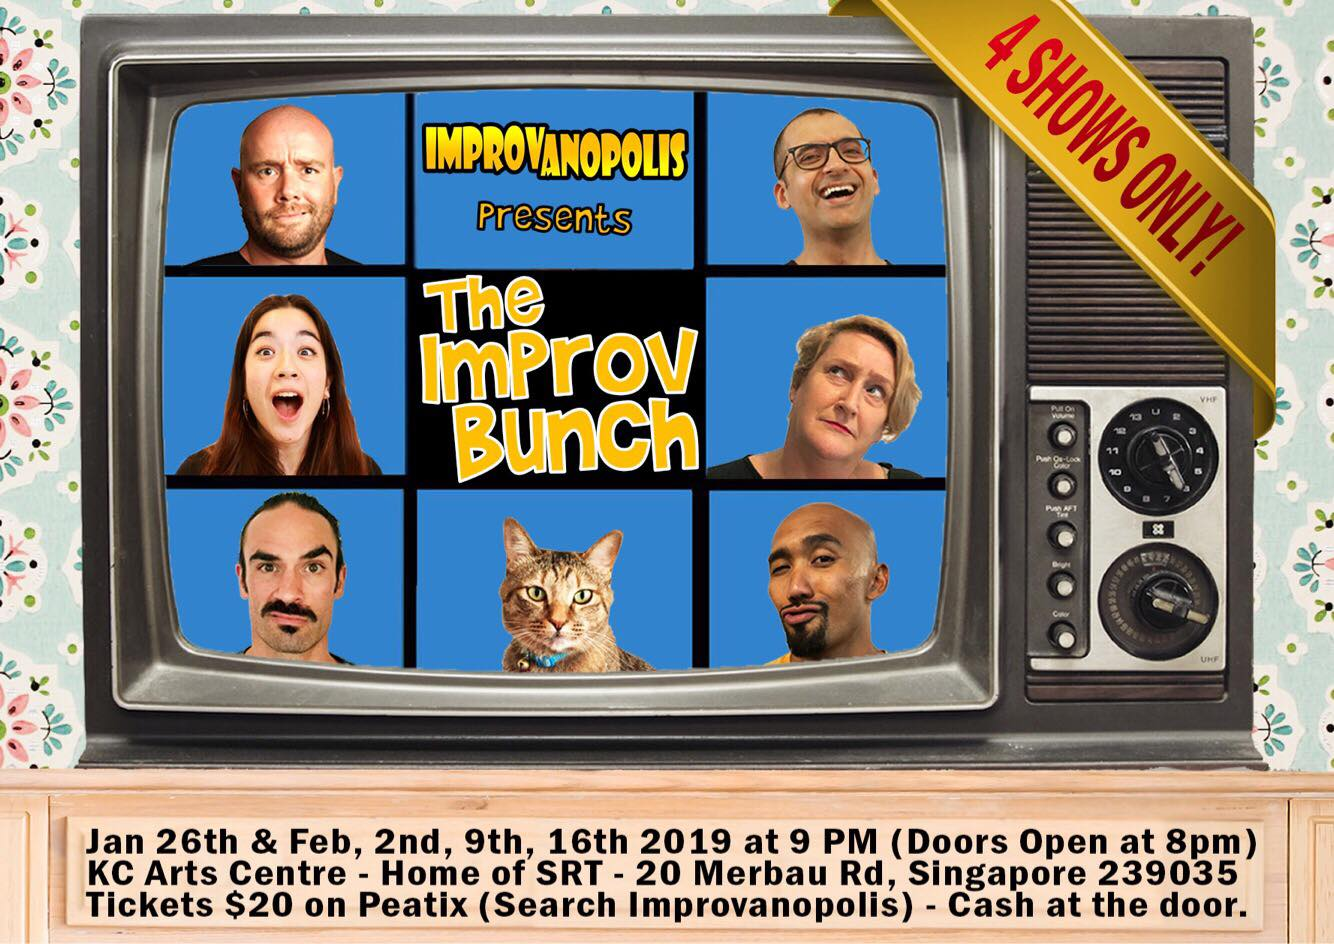 February 2019 improv shows, events in Singapore ...